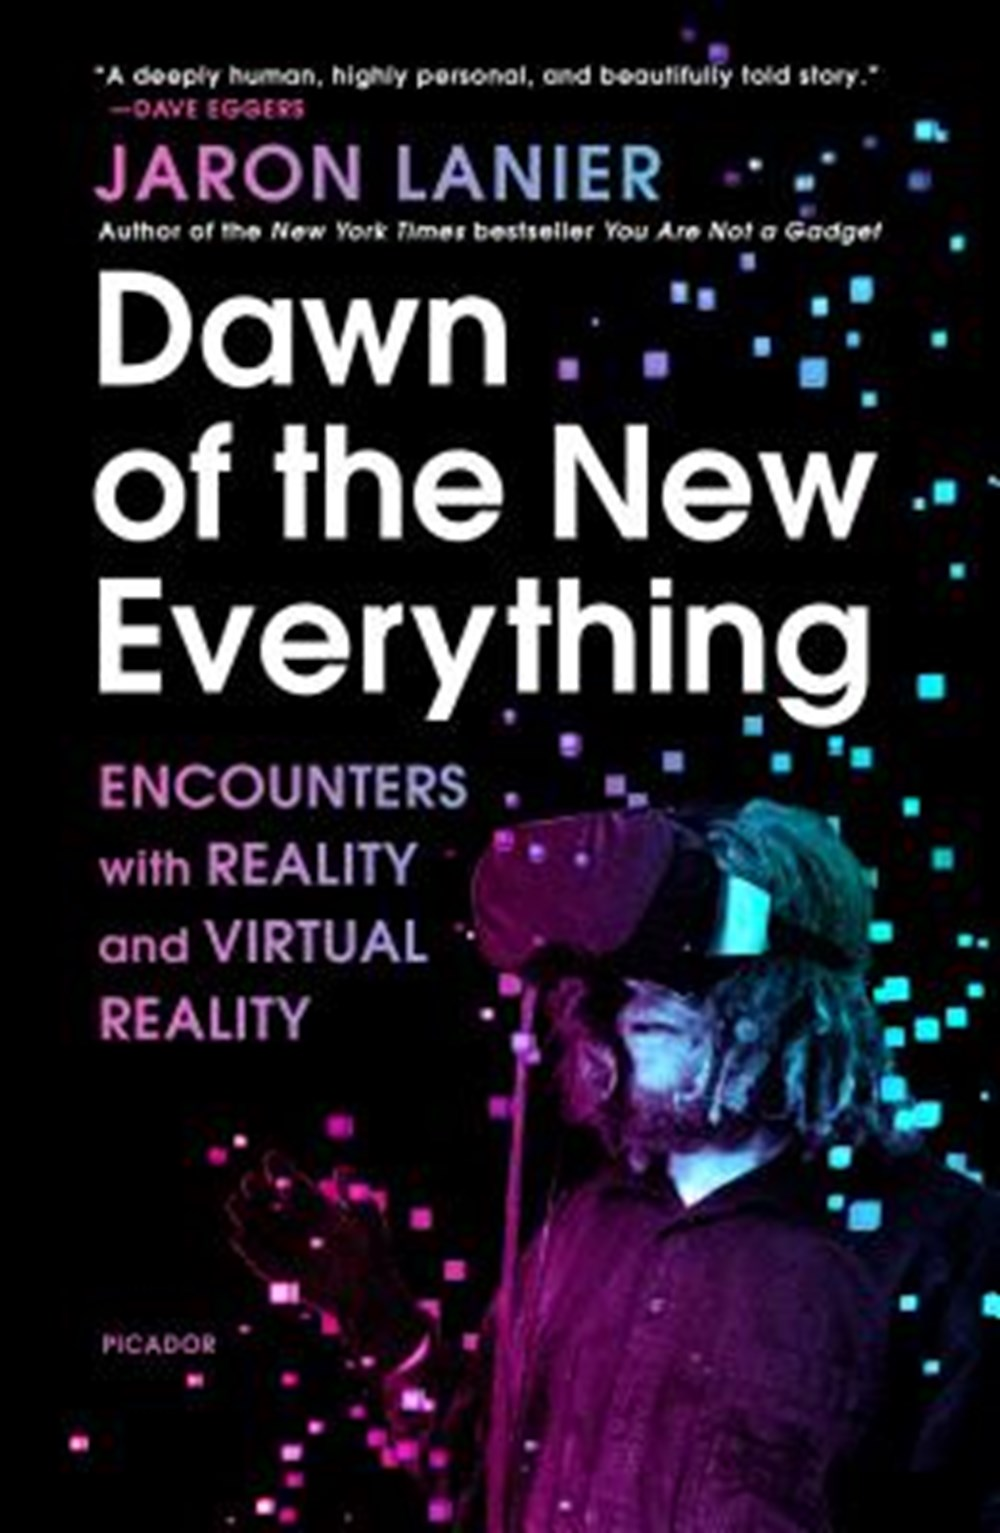 Dawn of the New Everything Encounters with Reality and Virtual Reality